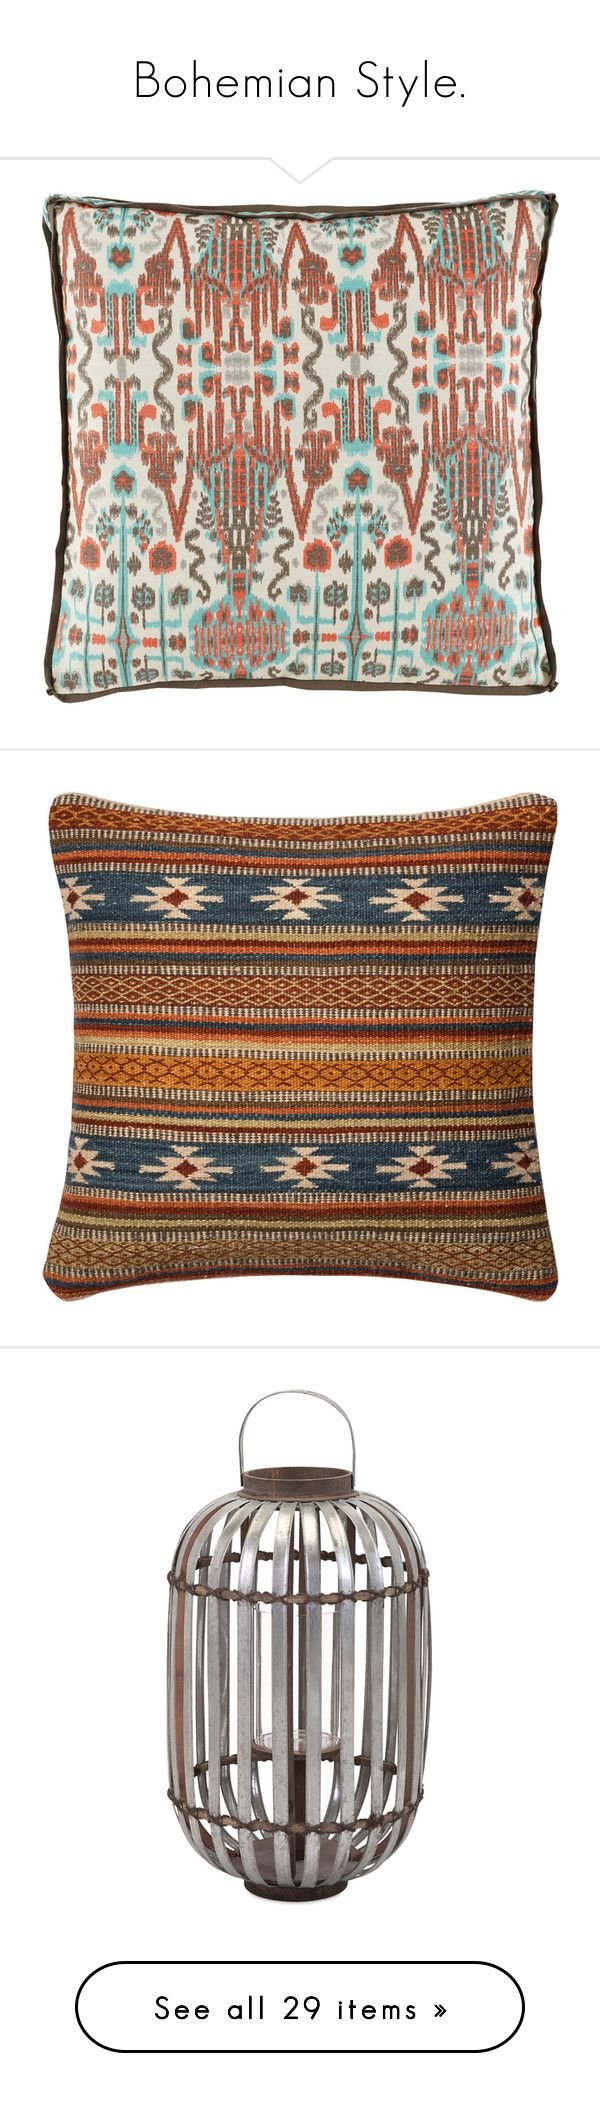 Shop home decor chevron stripes pillow from shop home decor - By Zincdoor Liked On Polyvore Featuring Home Home Decor Throw Pillows Ikat Throw Pillows Plush Throw Pillows Lacefield Designs Inspirational Home